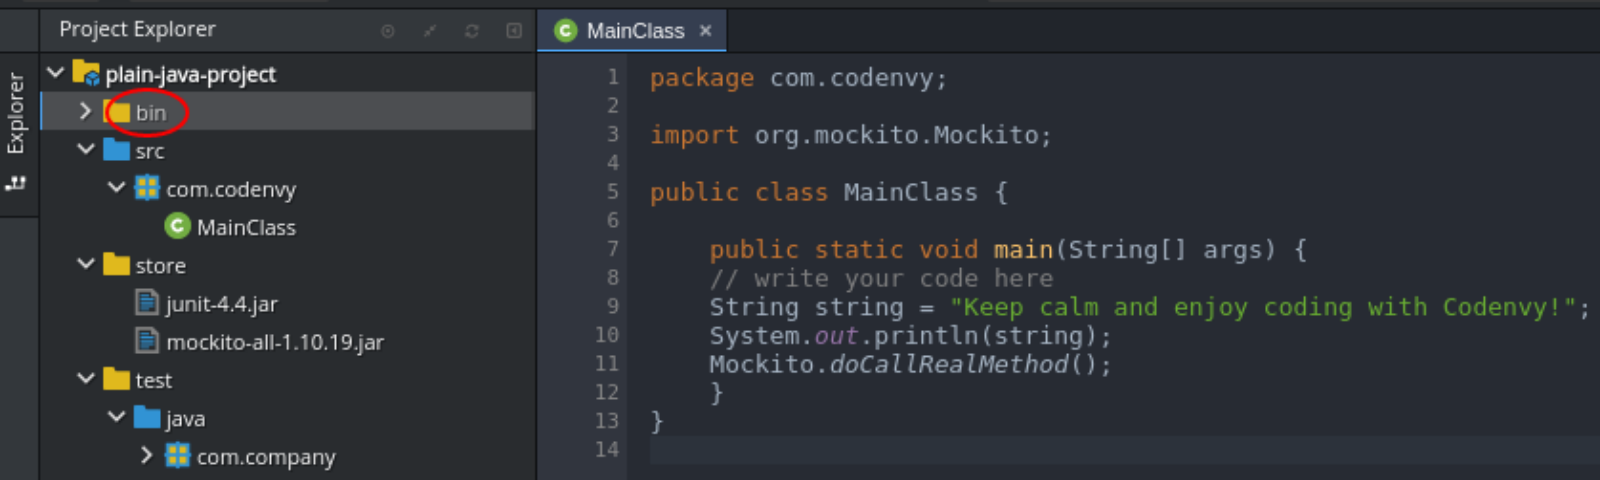 Hands-on: Configure & Run Plain Java Apps in Che - Eclipse